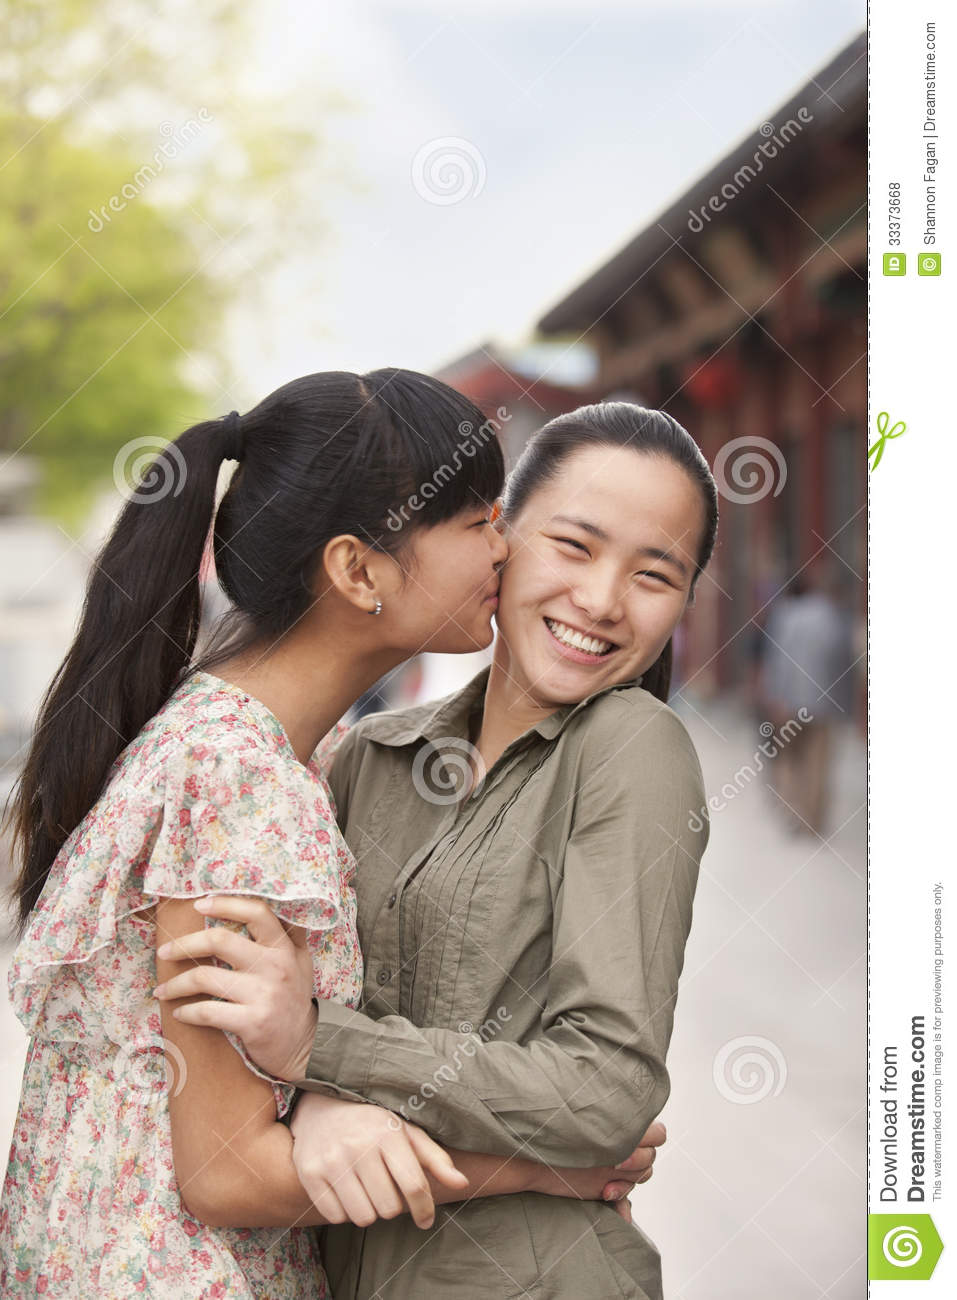 Two Young Women Embracing Royalty Free Stock Photos